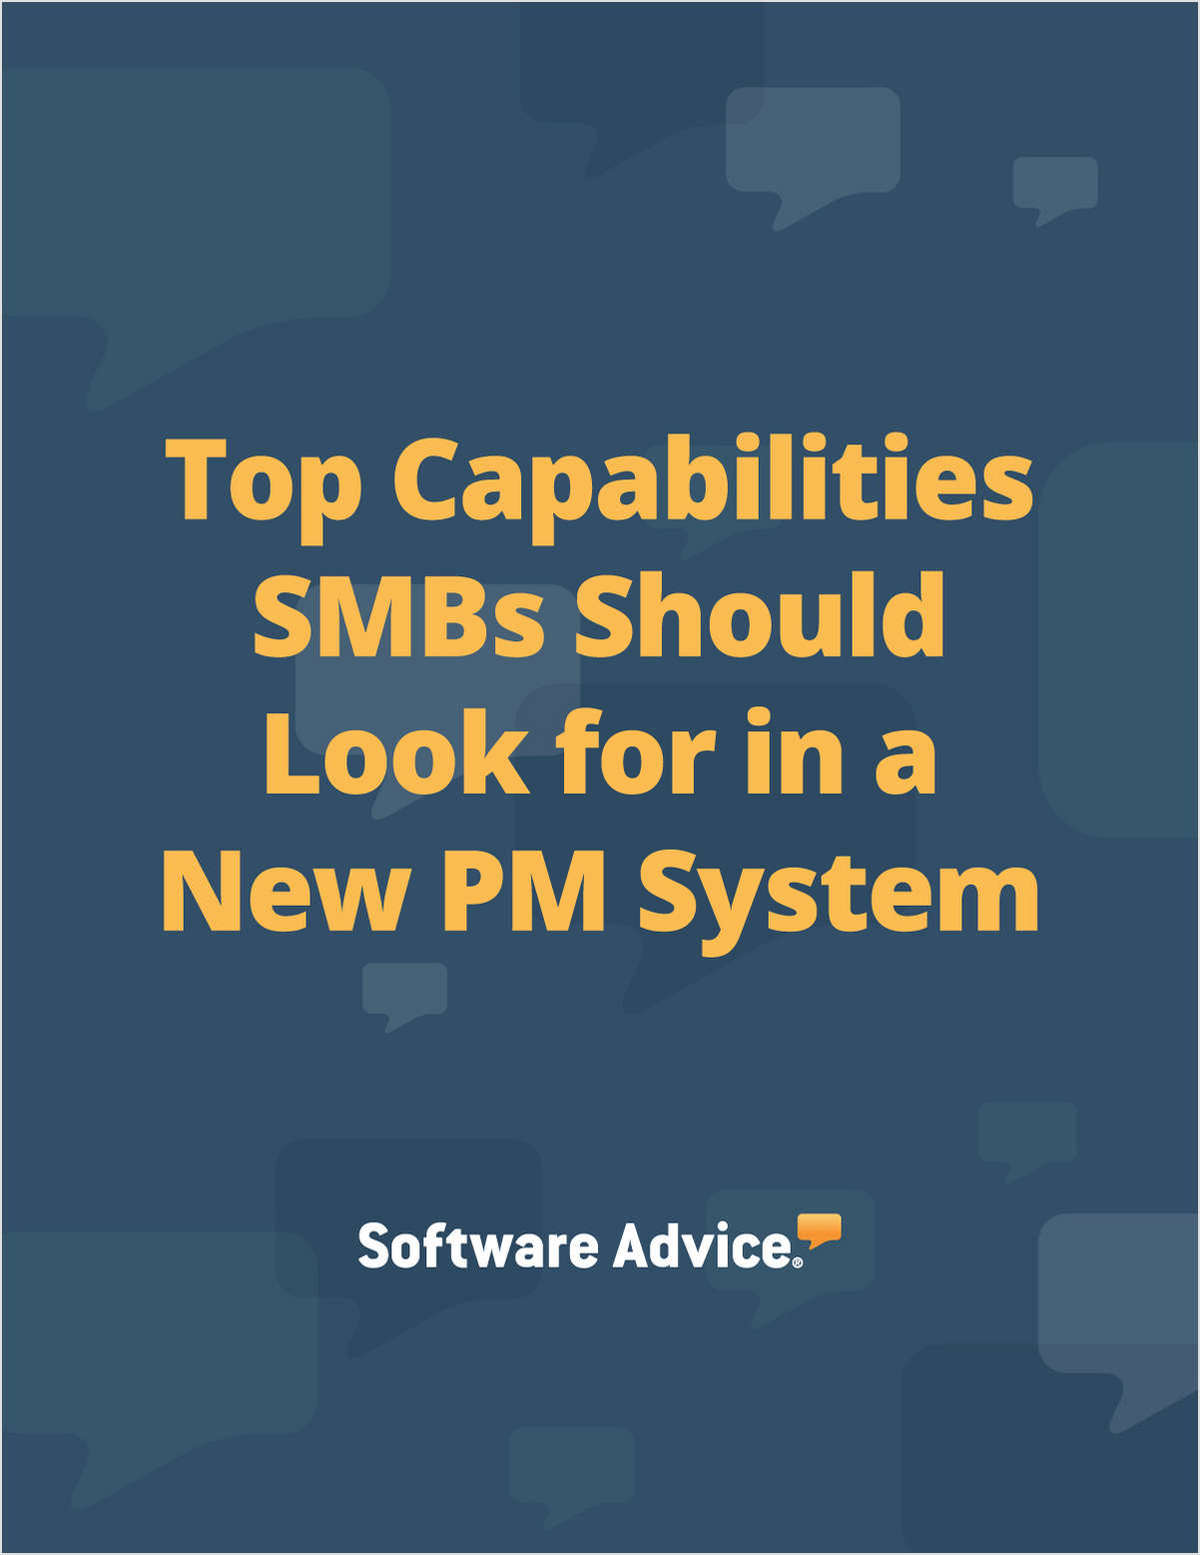 Top Capabilities SMBs Should Look for in a New PM System